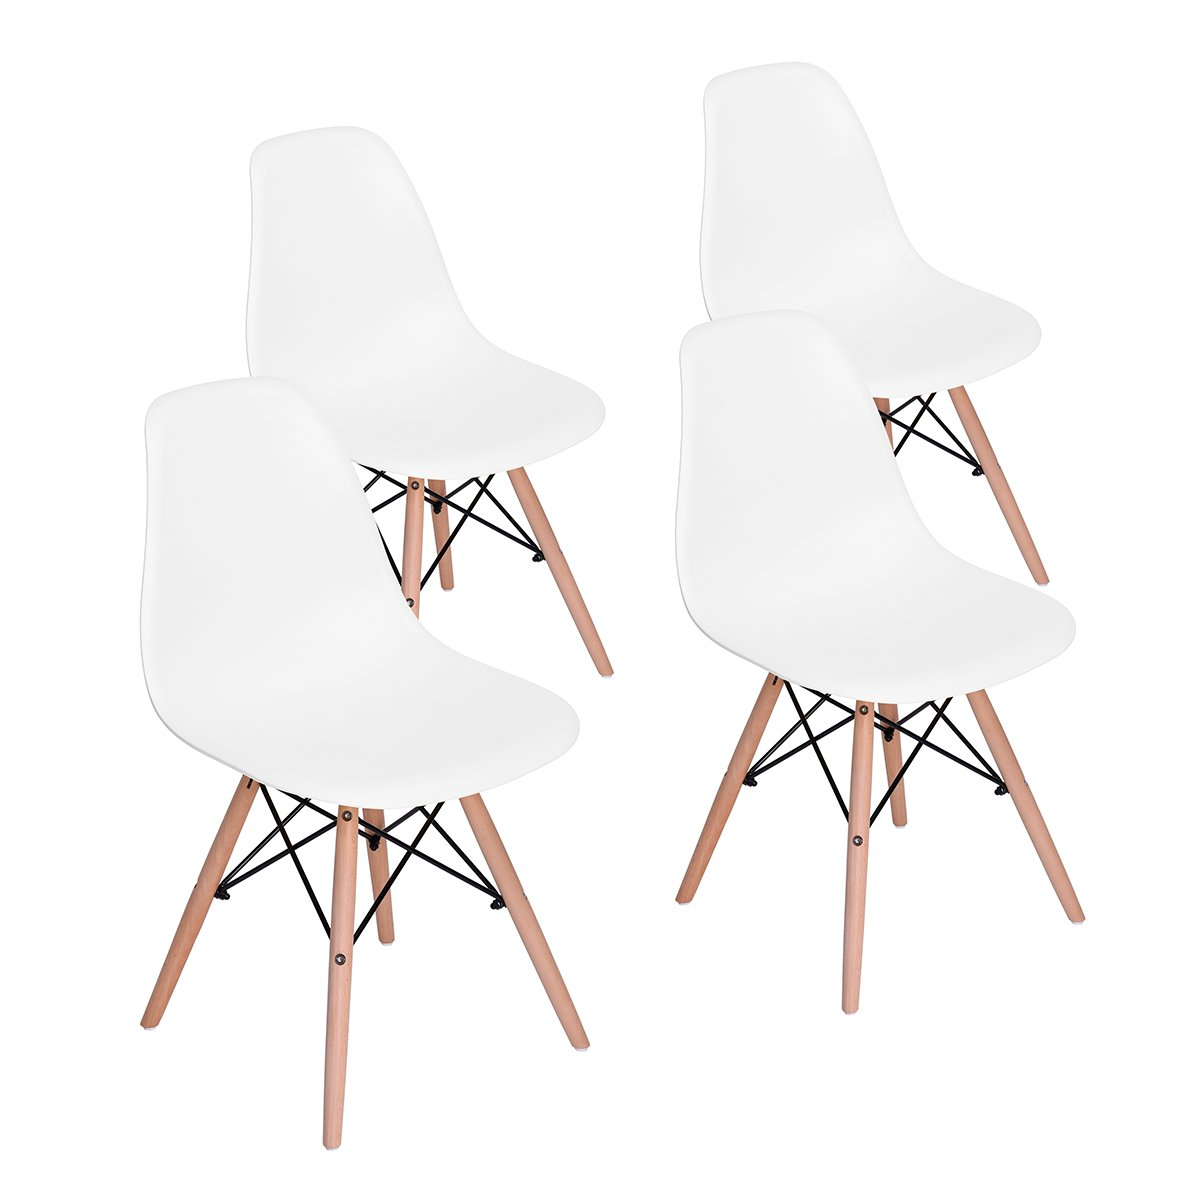 Homy casa mid century modern style eames seat height natural wood legs armless chairs for for kitchen dining bedroom living room white color set of 4